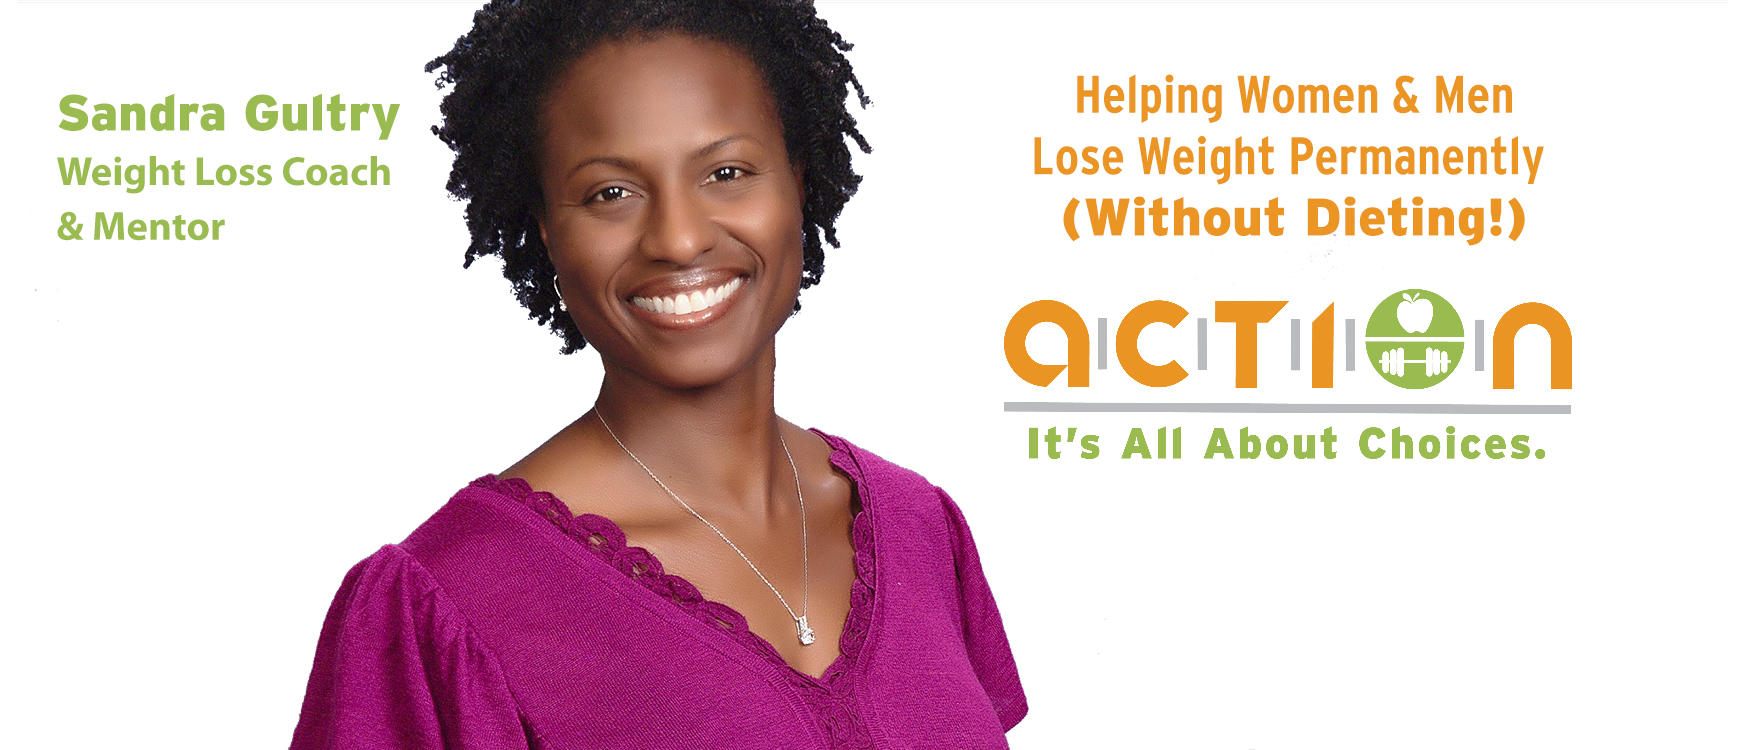 It's All About Choices - Nutrition & Weight Loss image 3